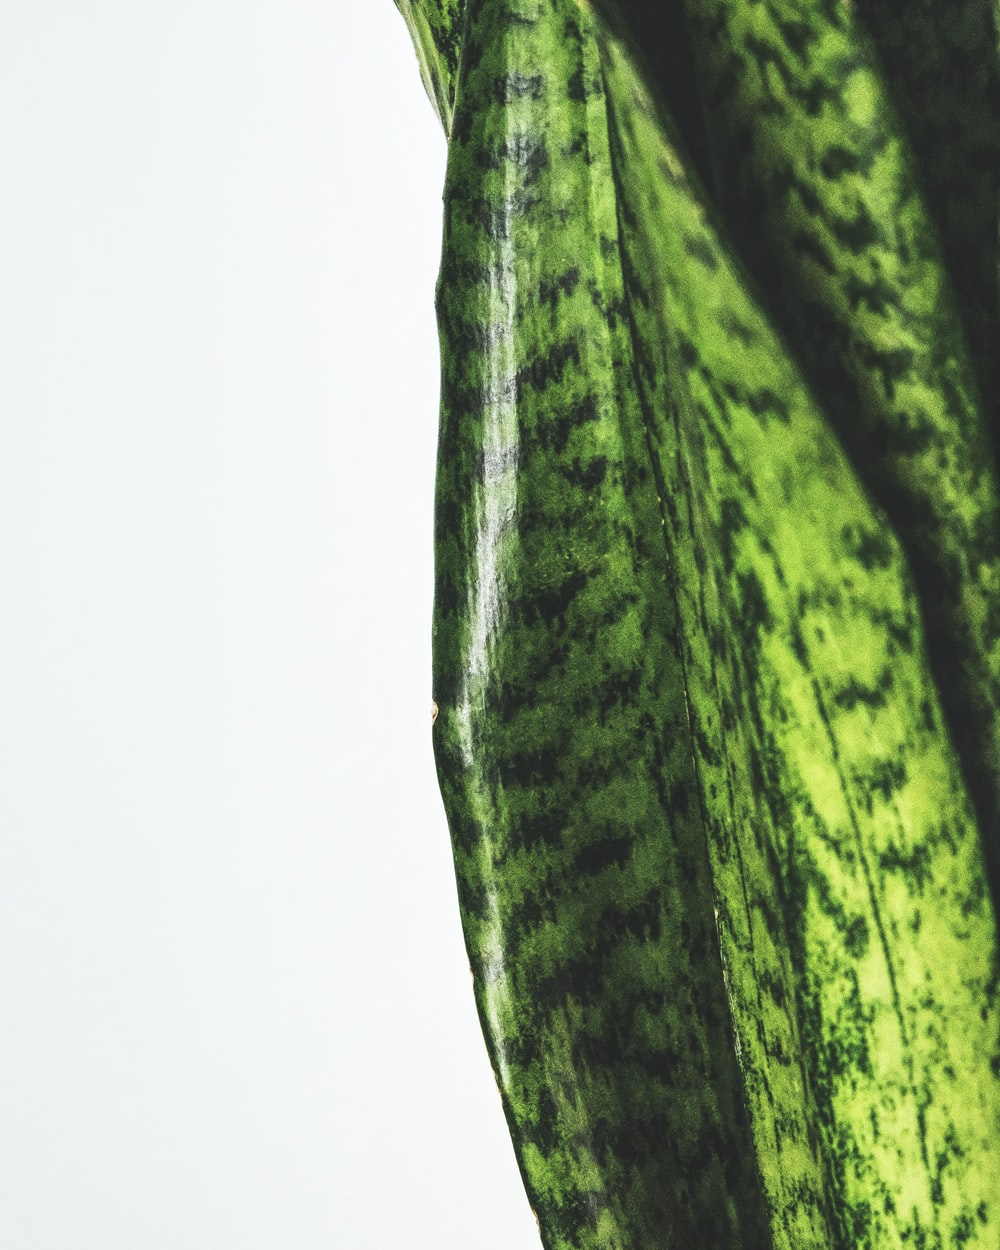 green and black textile on white surface